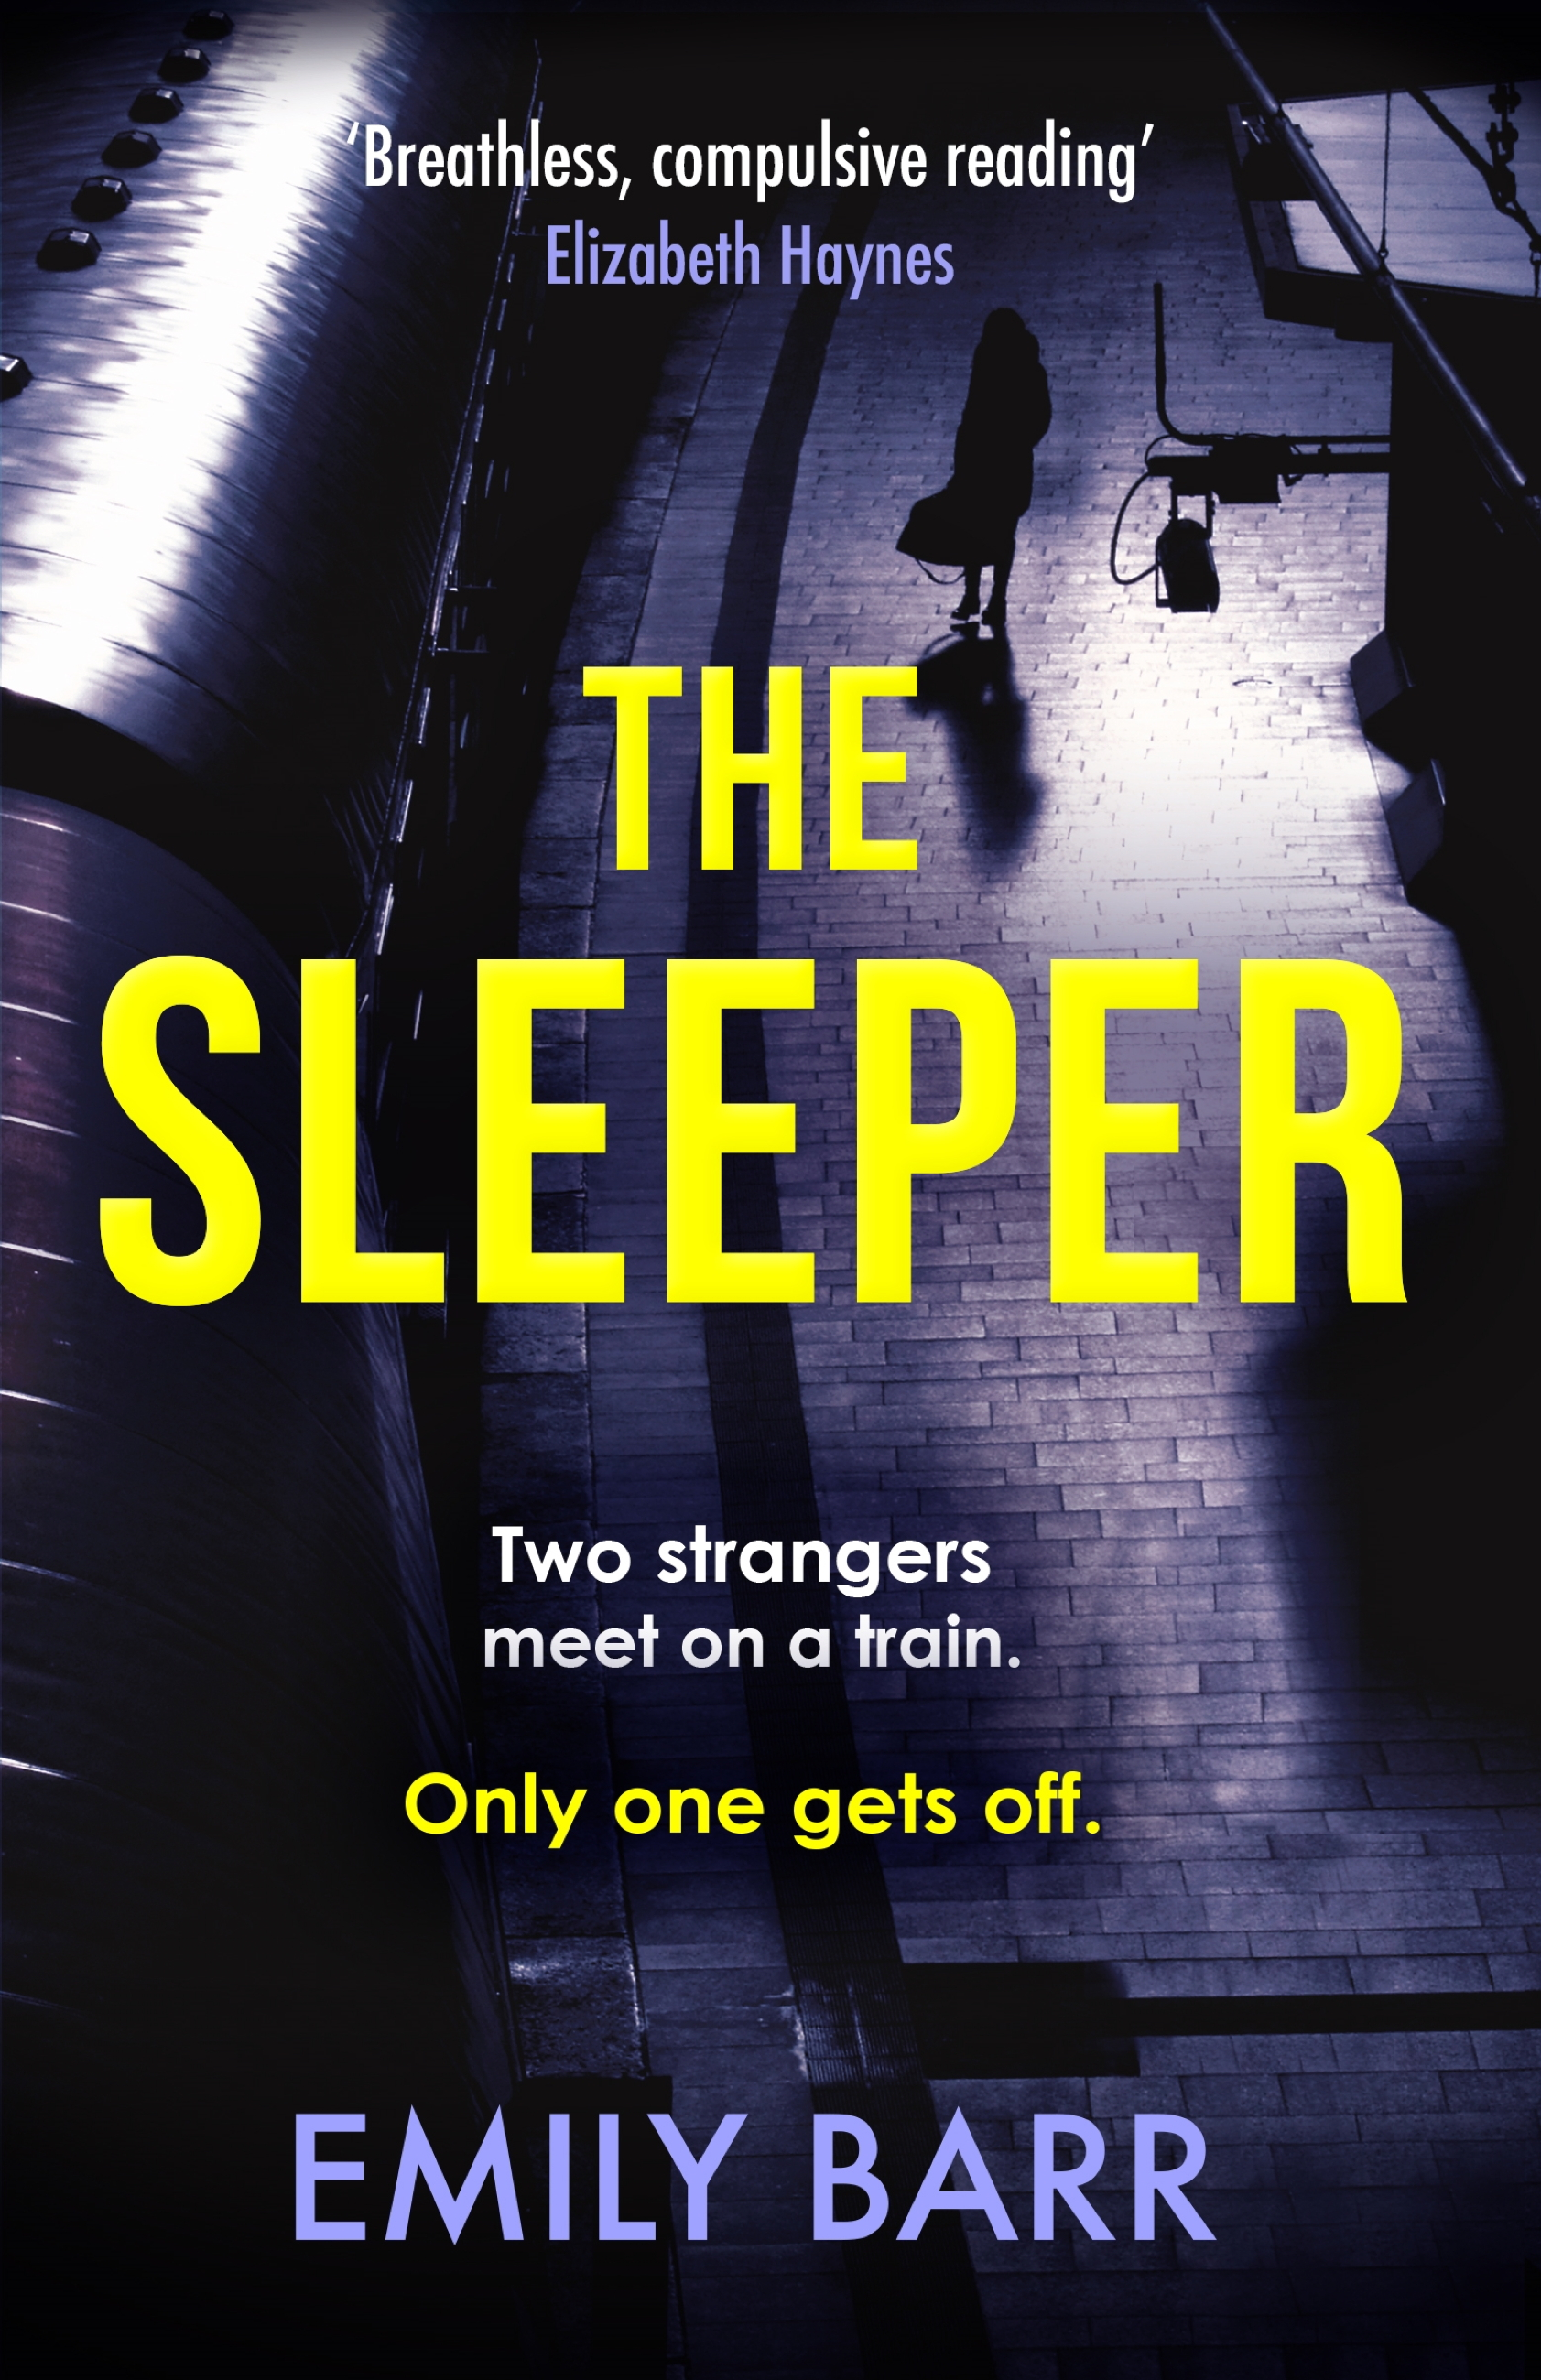 The Sleeper: Two strangers meet on a train. Only one gets off